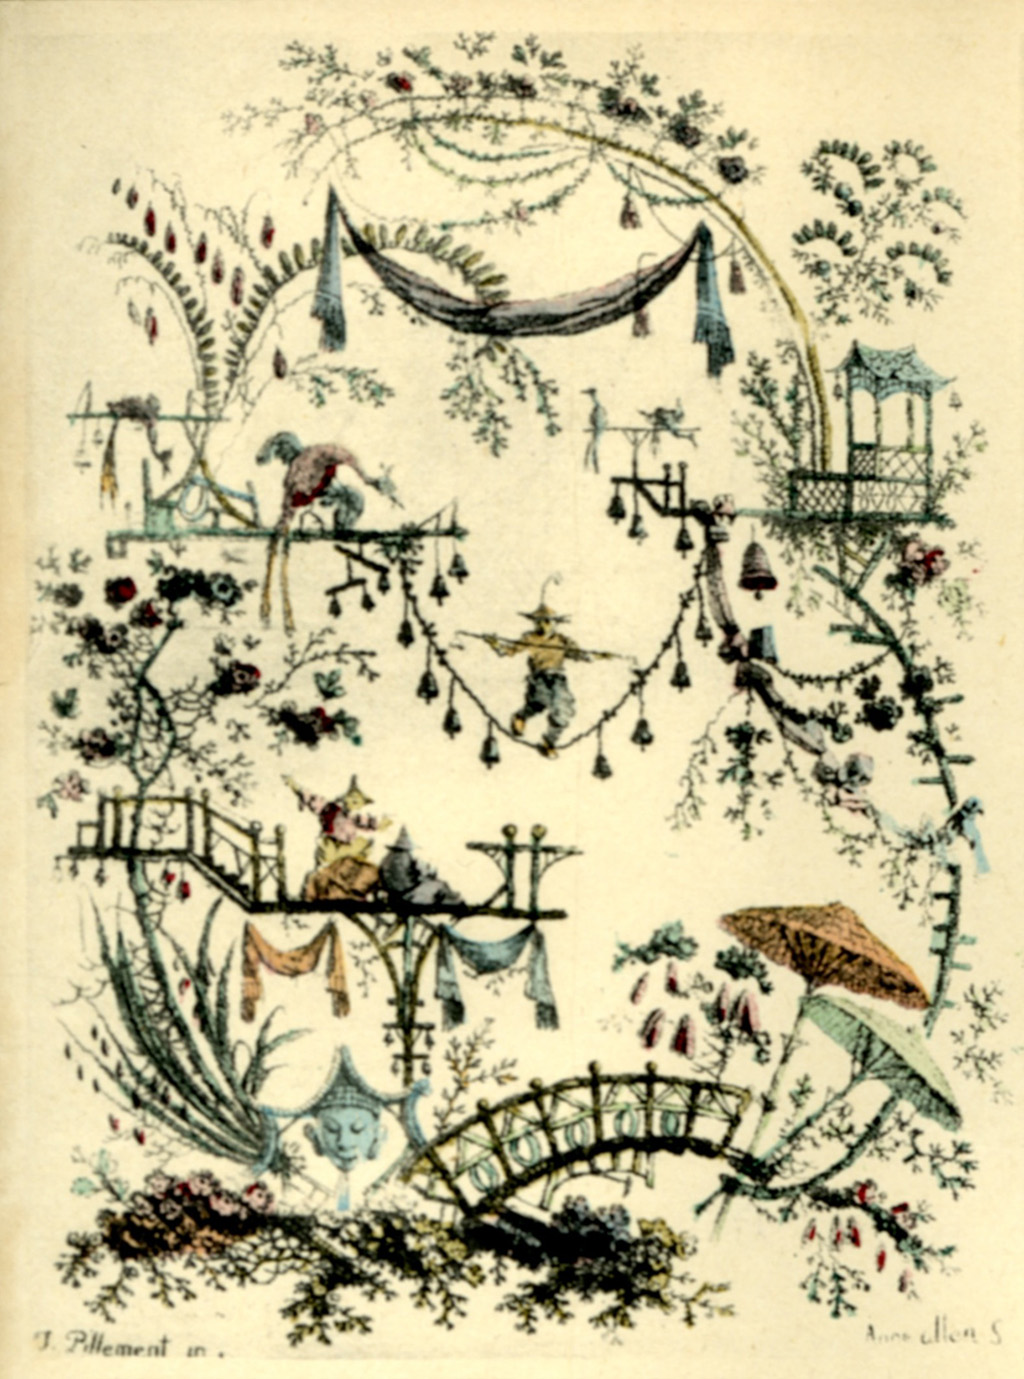 Jean Pillement. From Nouvelle Suite de Cahiers de Dessins Chinois. Egraved by Anne Allen.